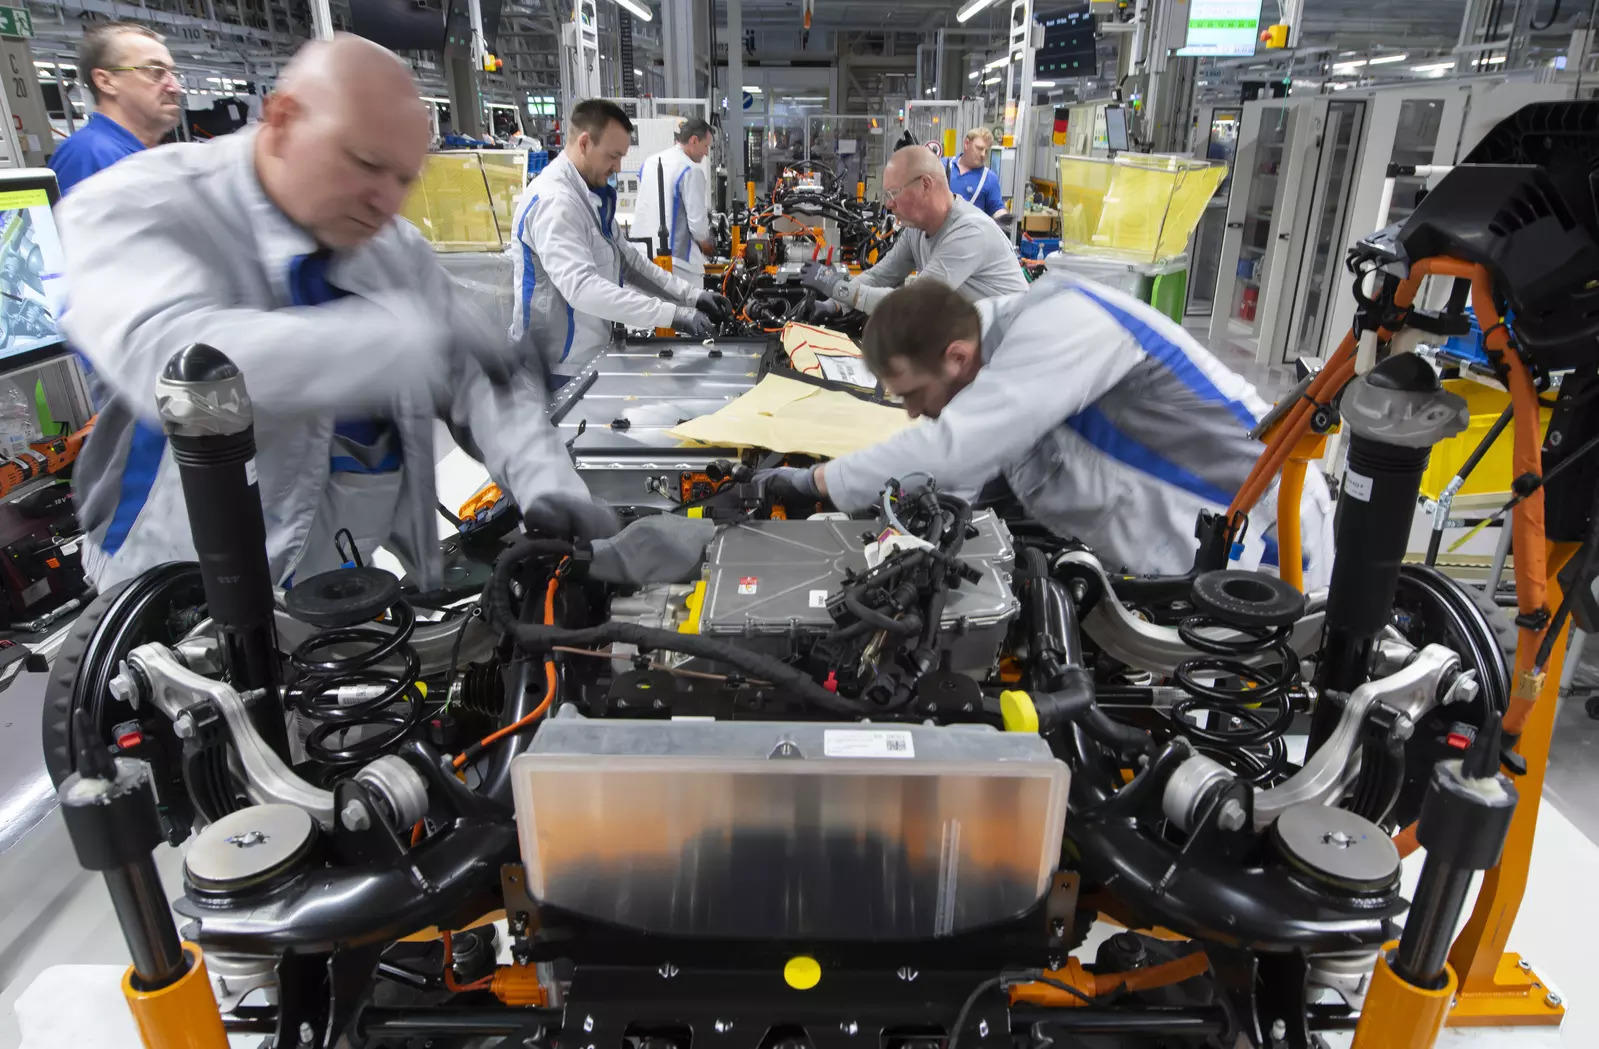 Volkswagen said it would introduce new battery technology and chemistry that aims to make production more efficient and lead to better performance, steps it said would help bring electric cars within the reach of more buyers.